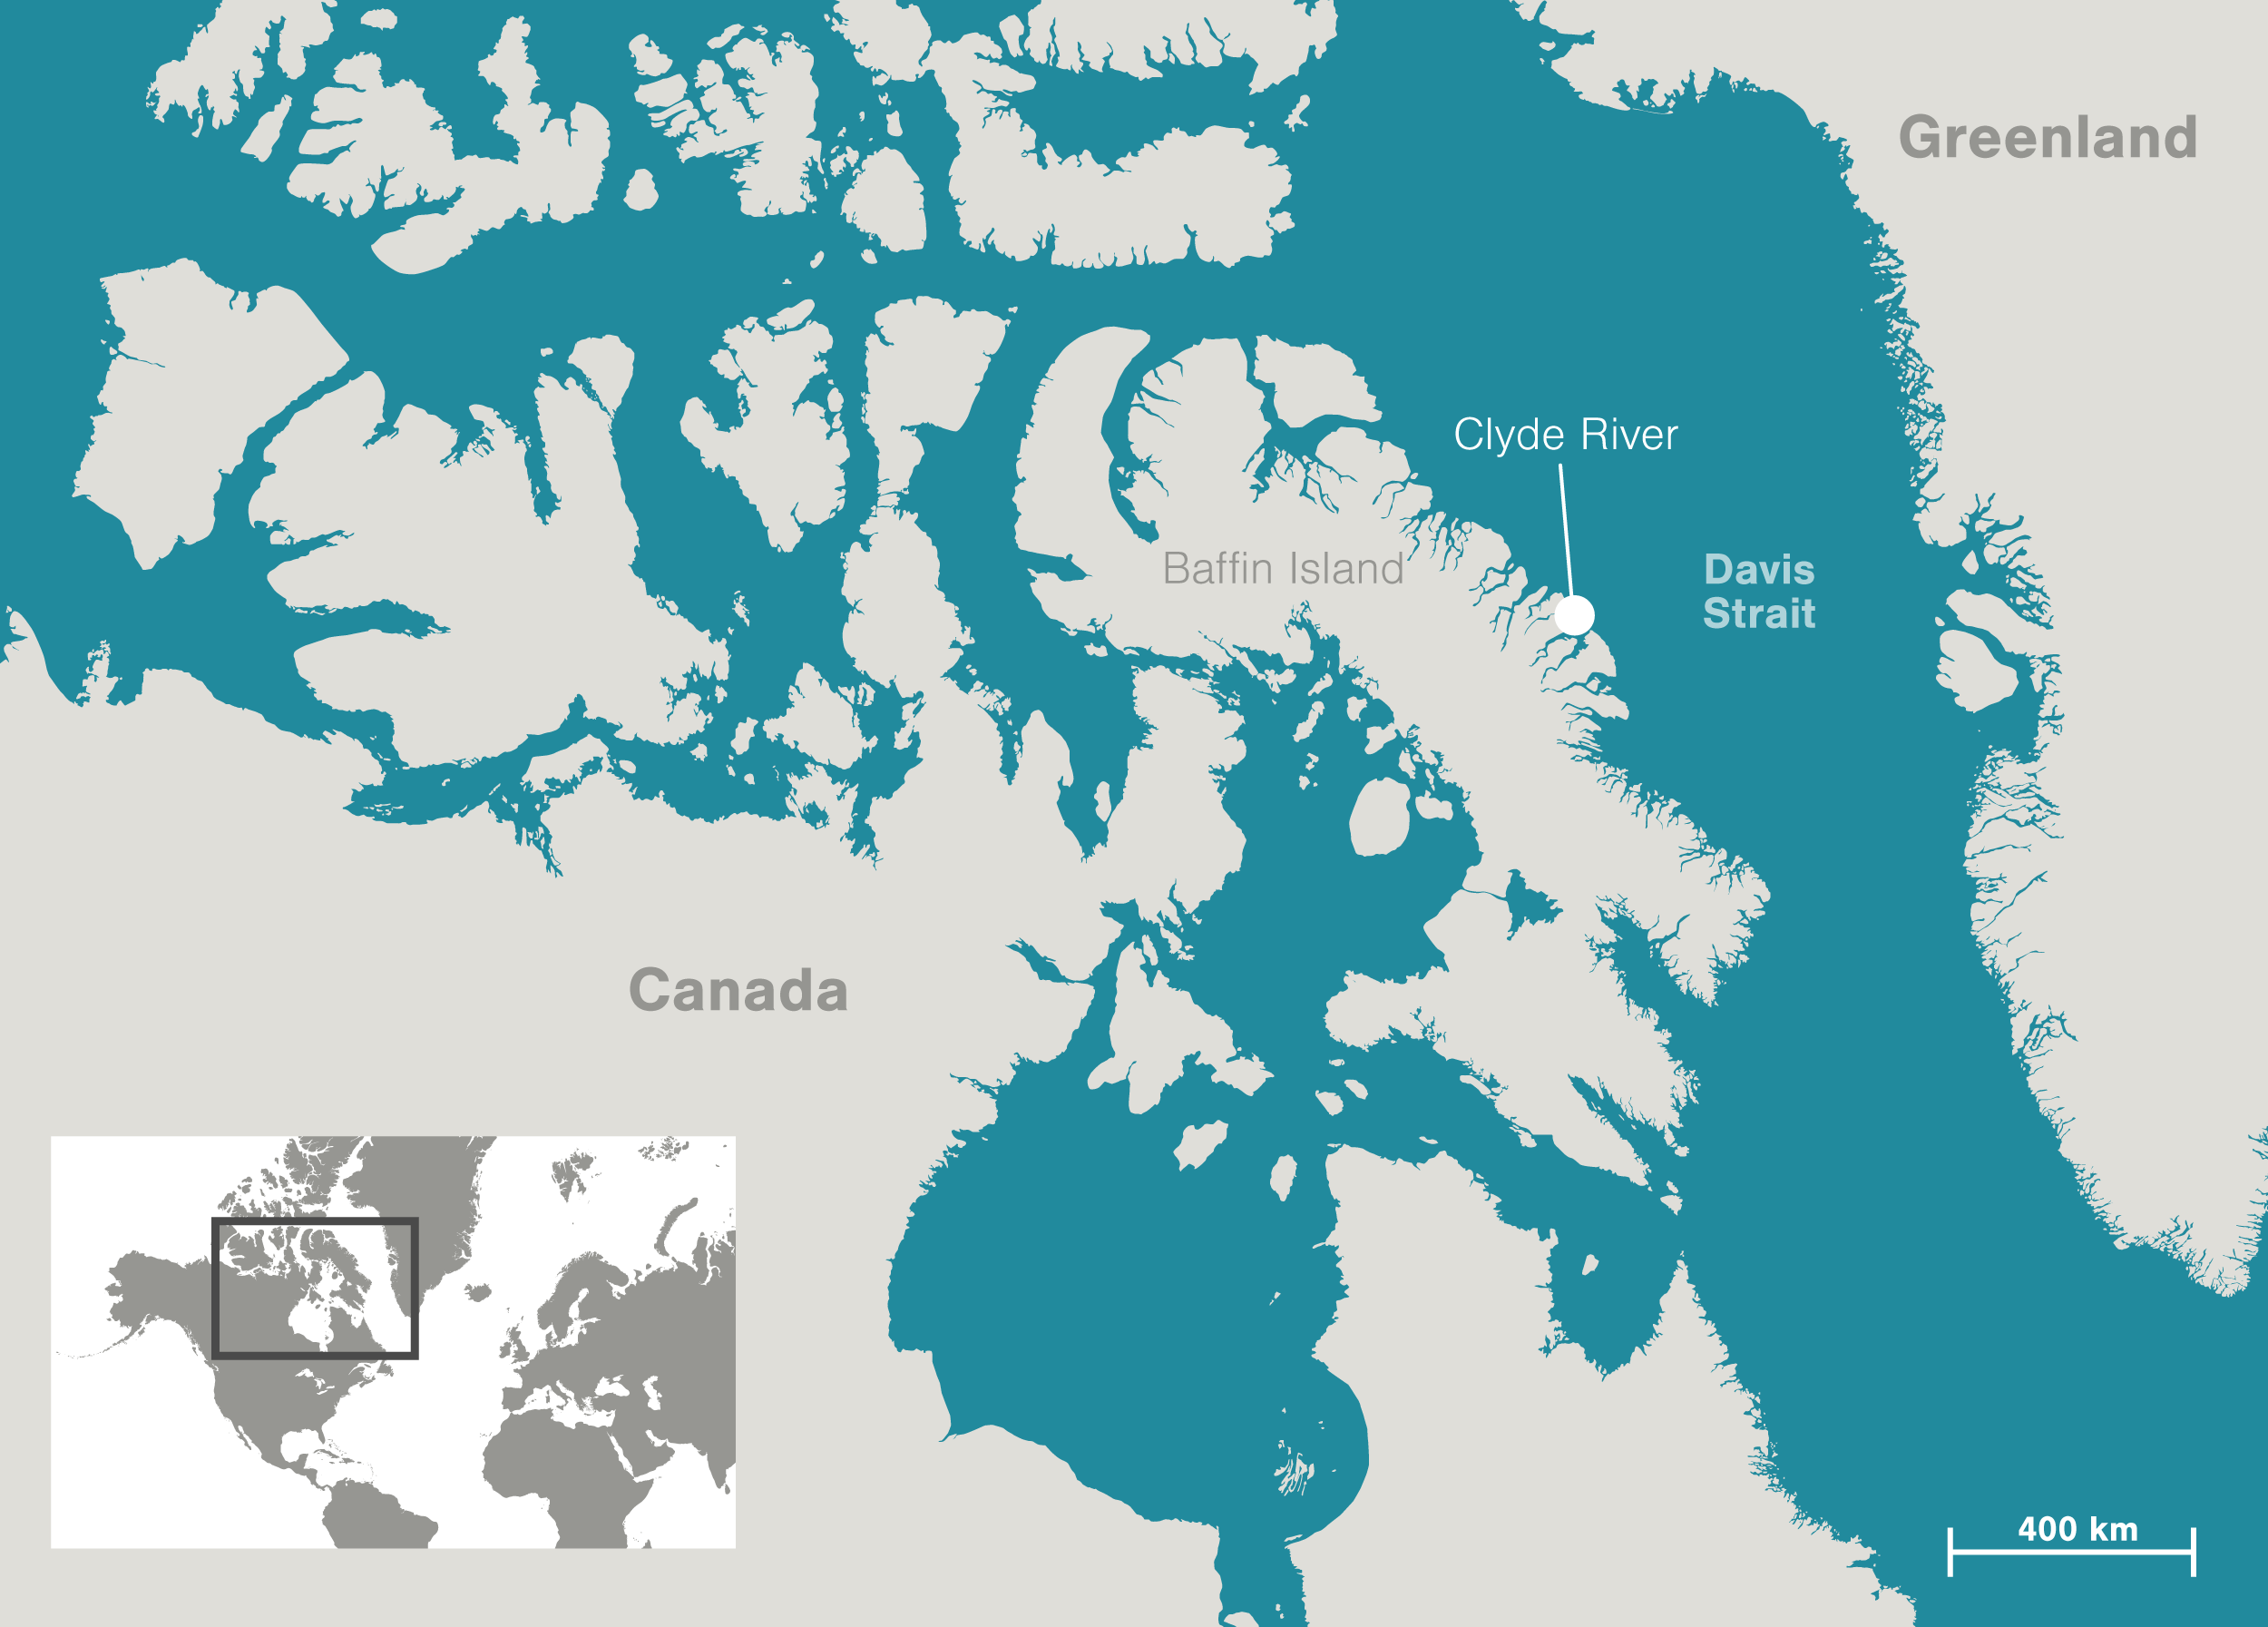 Map Of Canada Davis Strait.An Act Of Forgiveness Fuels A Fight In The Arctic Hakai Magazine